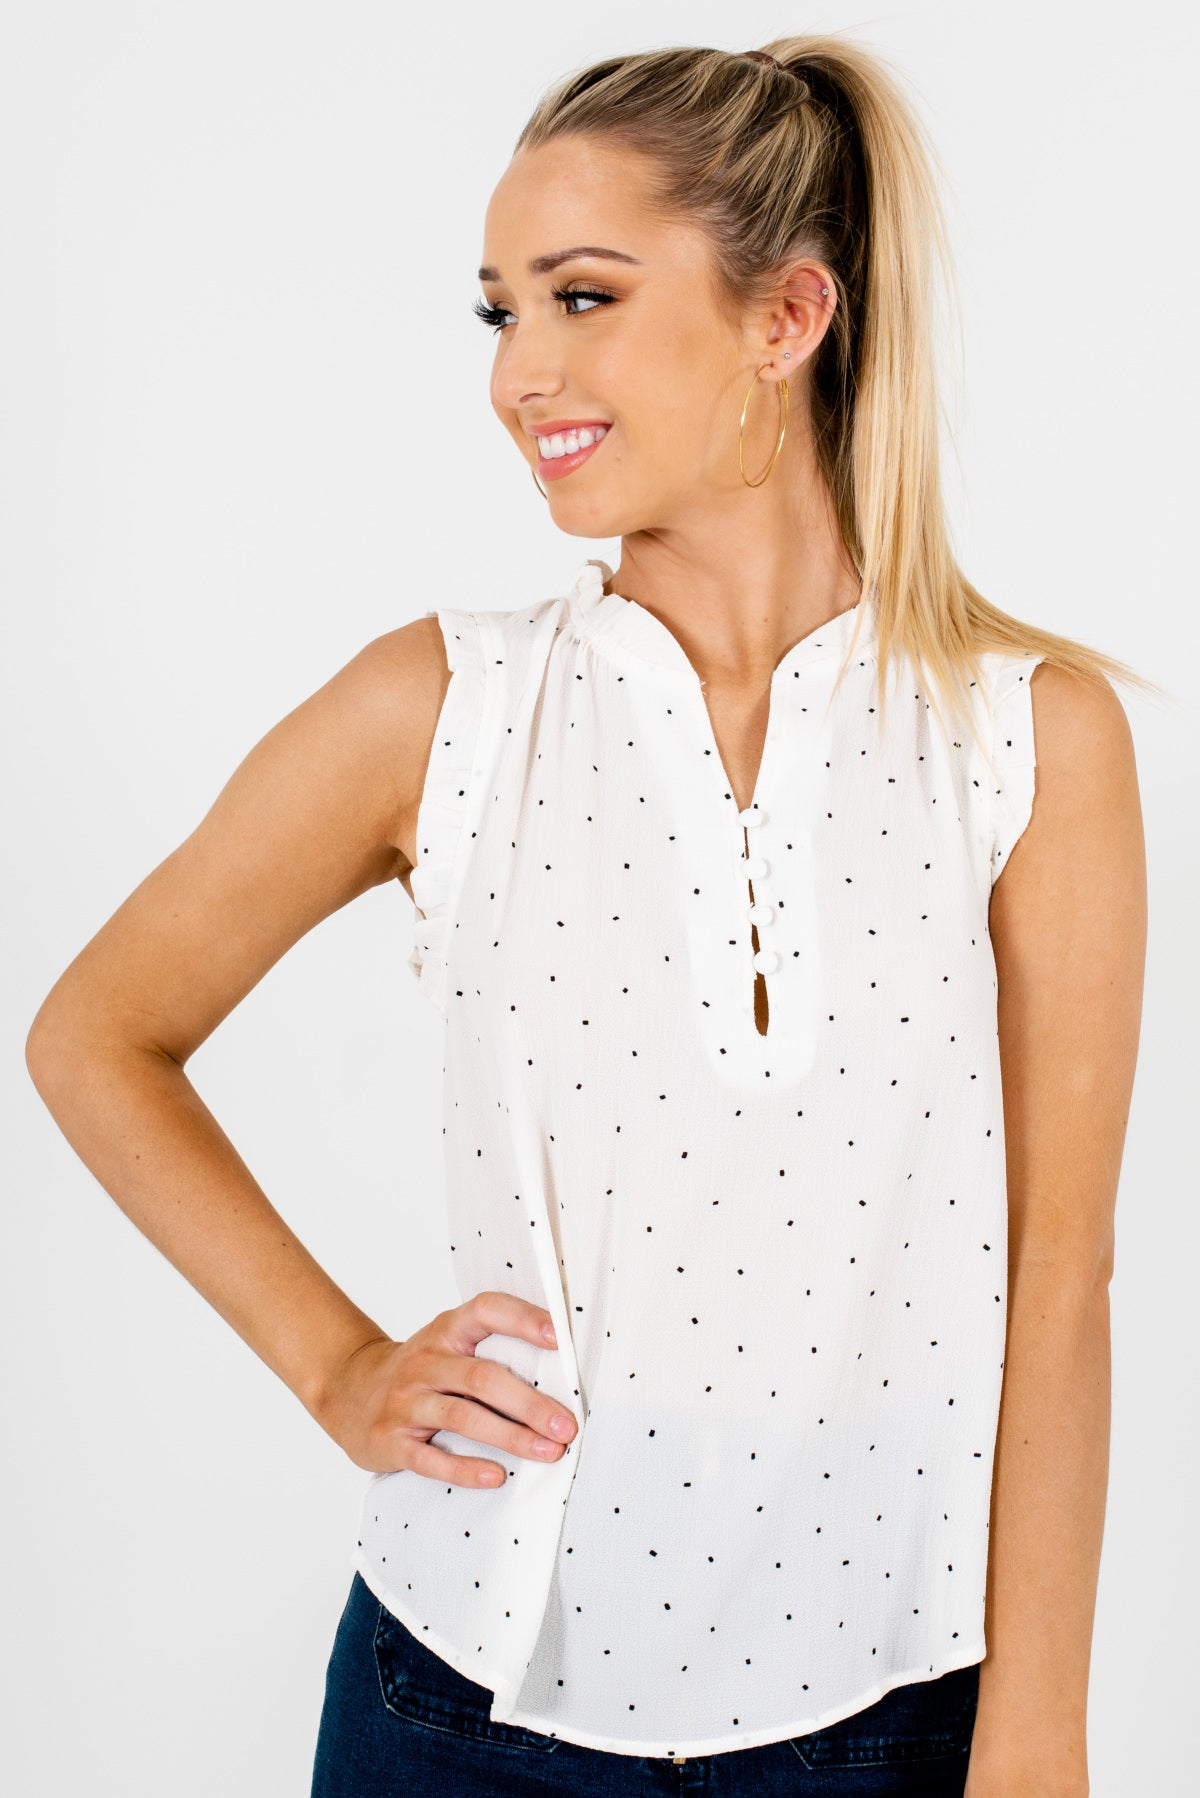 White and Black Patterned Boutique Blouses for Women